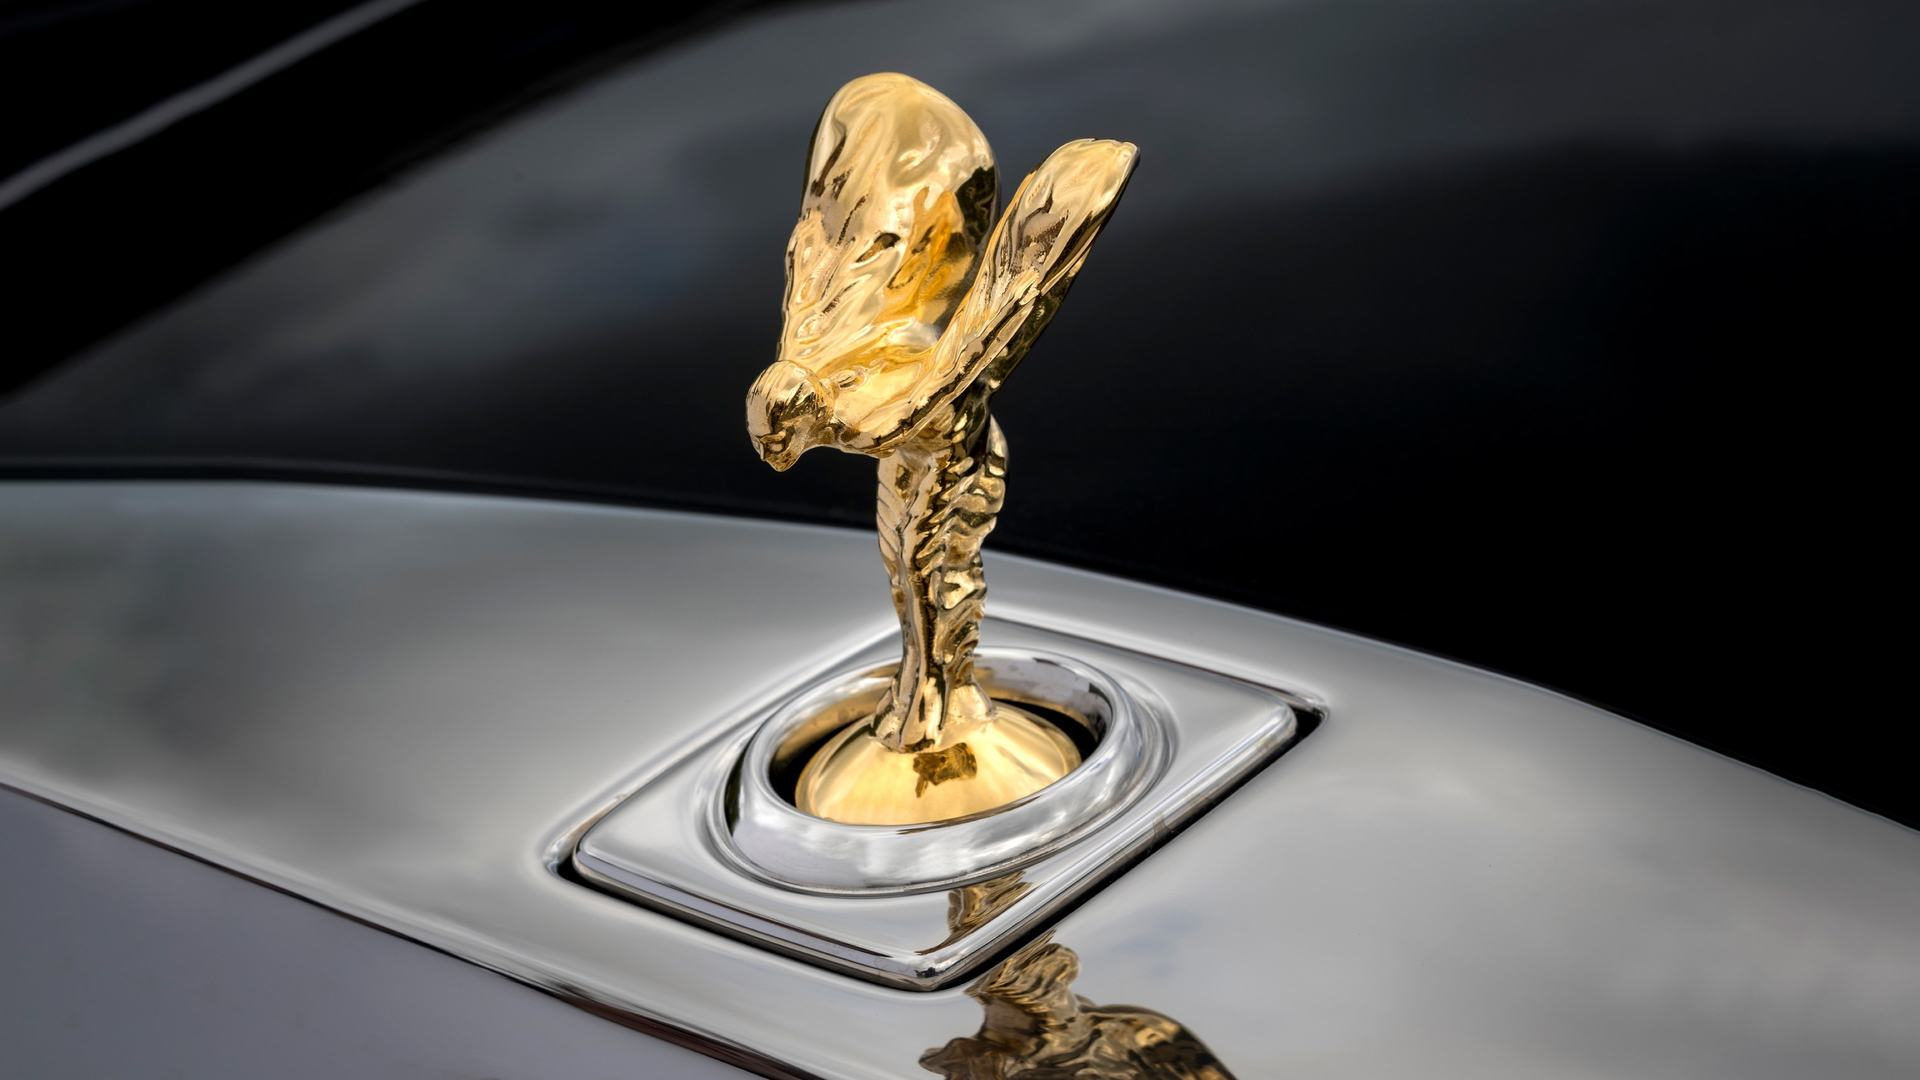 Close up shot of the Spirit of Ecstasy on the Rolls-Royce gunmetal Phantom